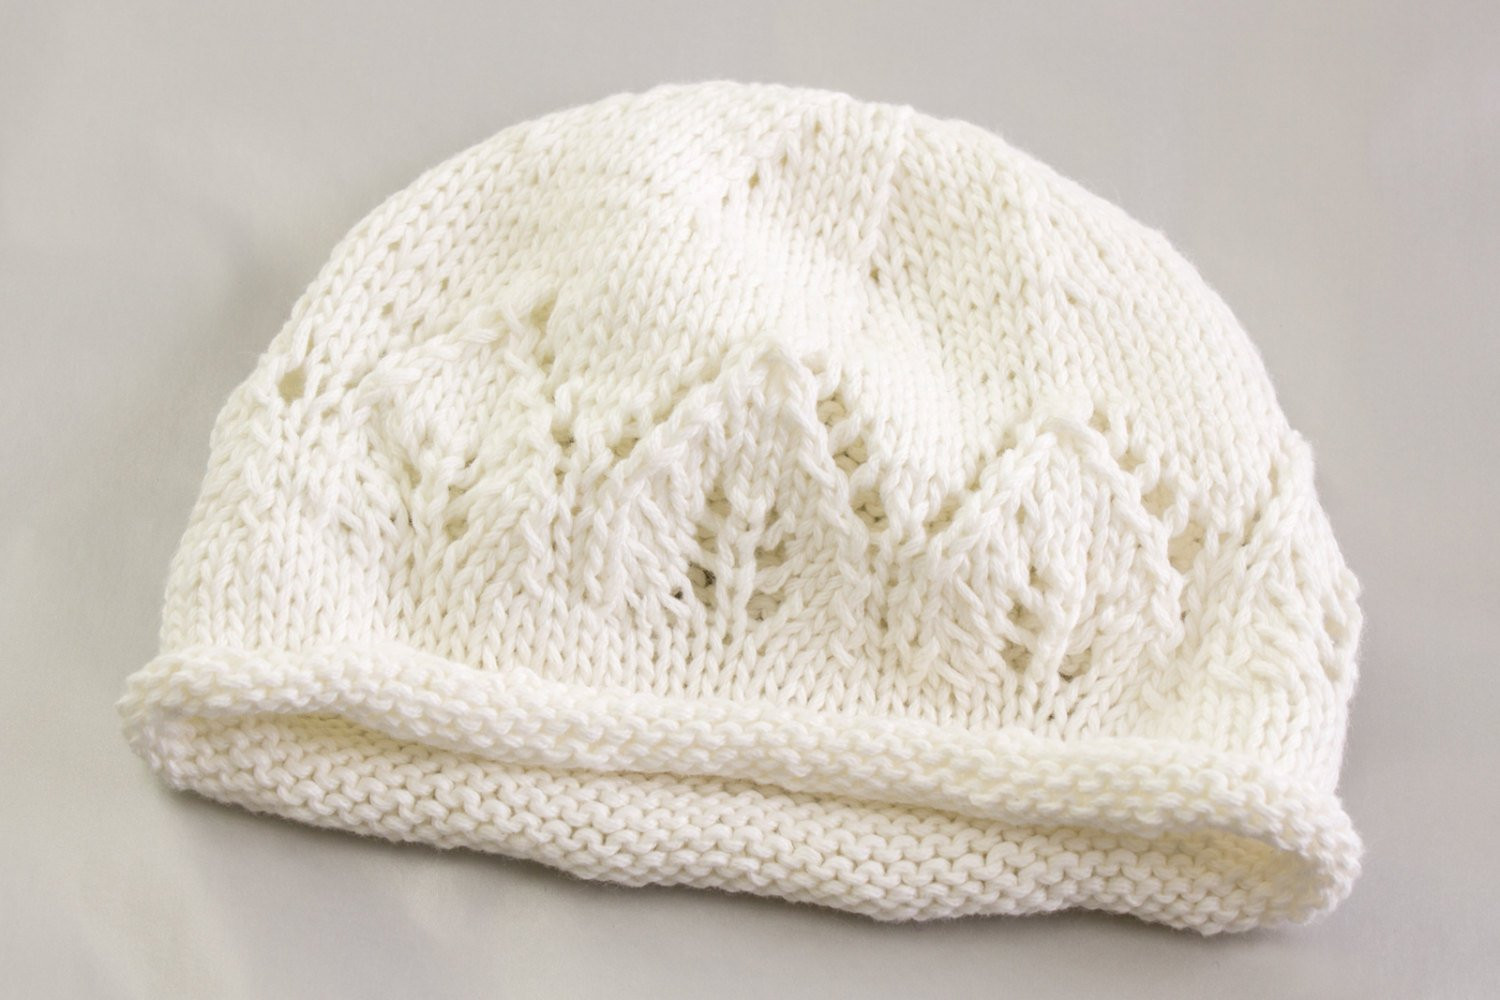 KNITTING PATTERN Newborn Baby Hat Baby Hat with Lace Panel